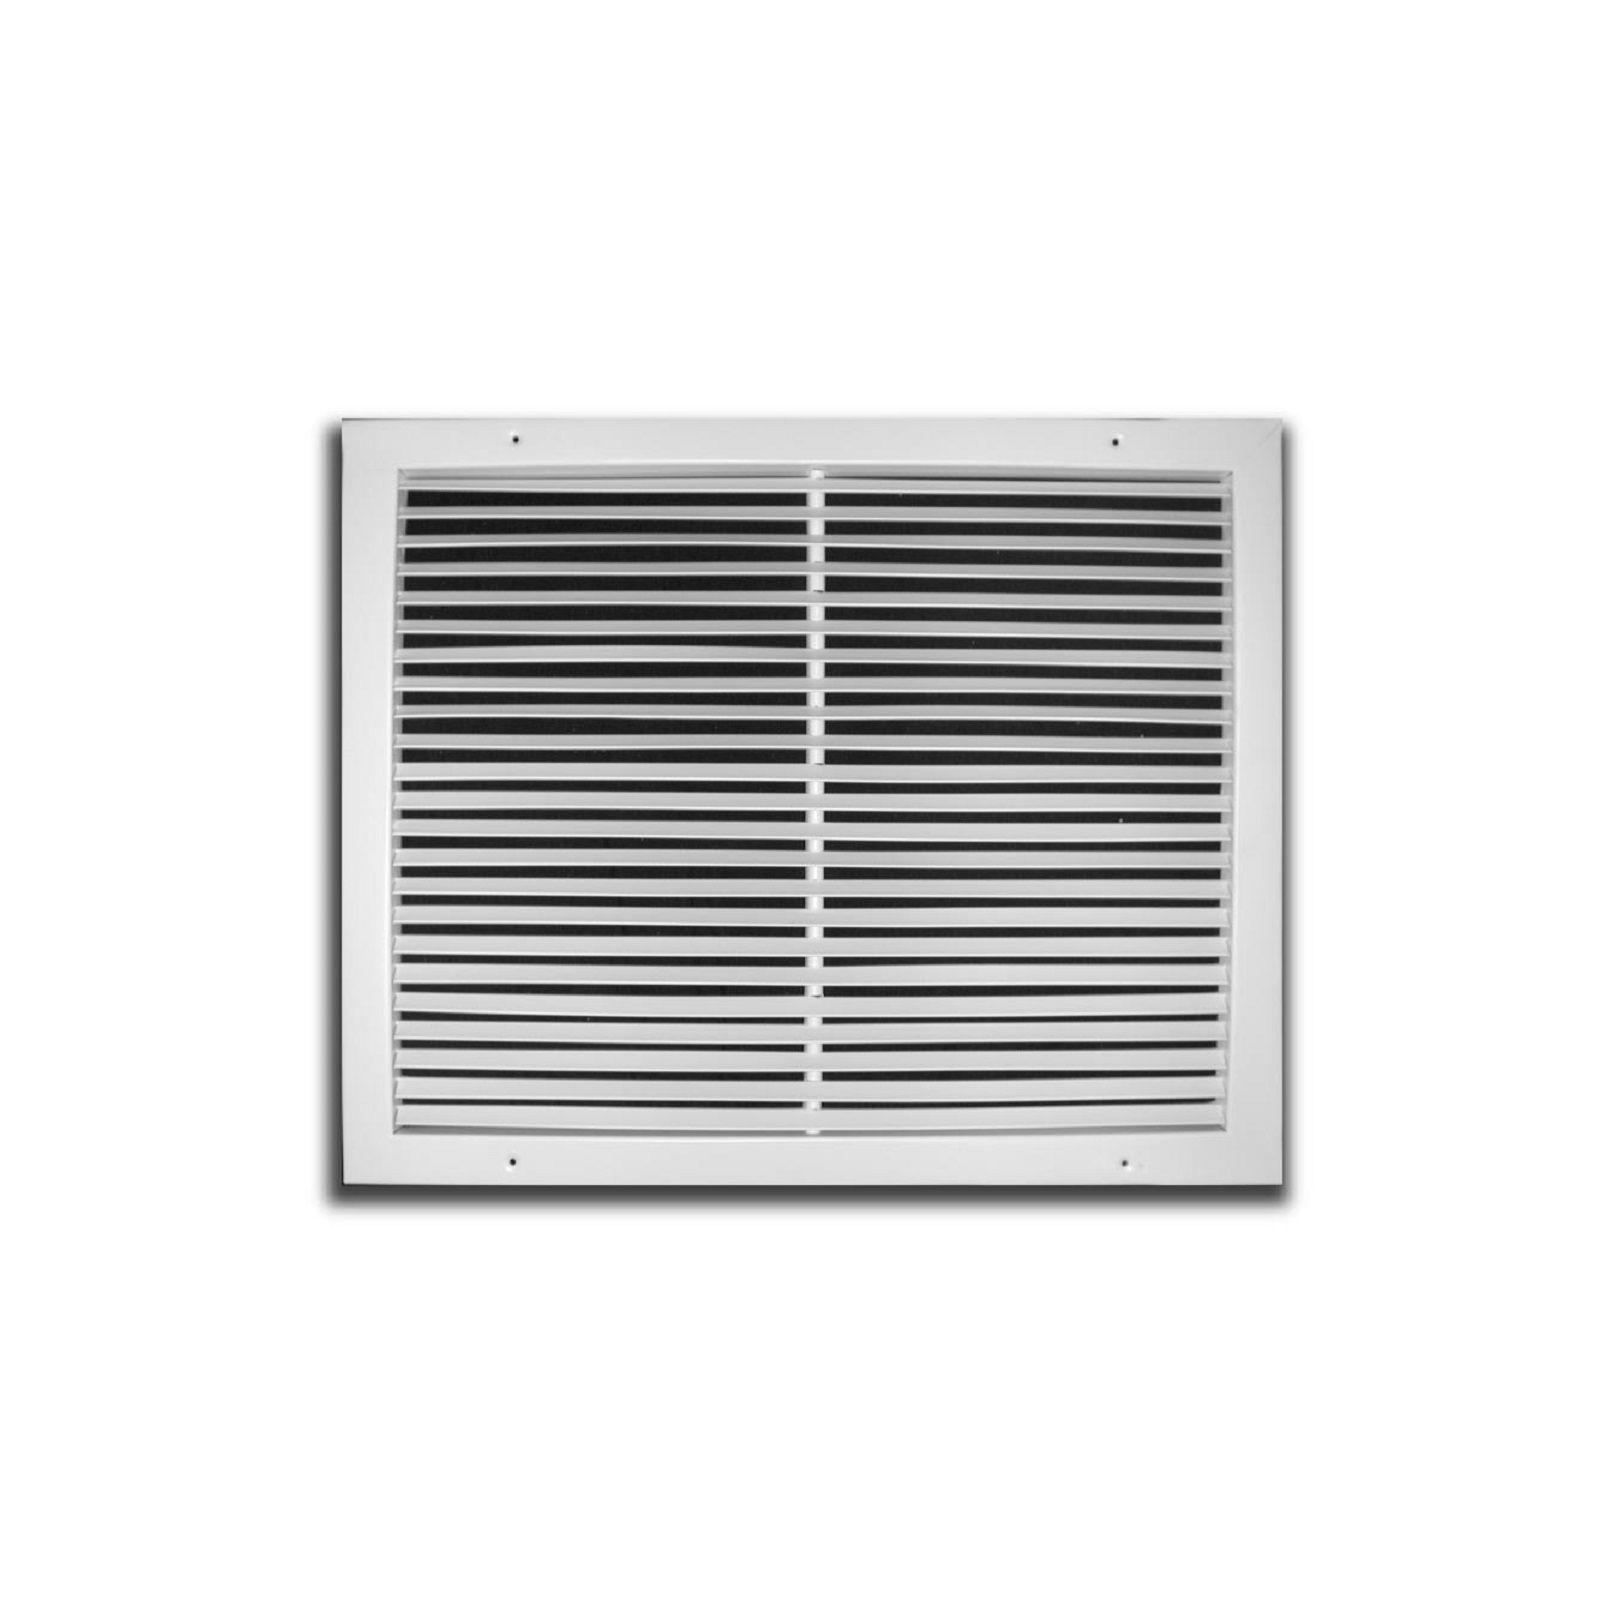 "TRUaire 270 16X10 - 16"" X 10"" White Fixed Bar Return Air Grille"